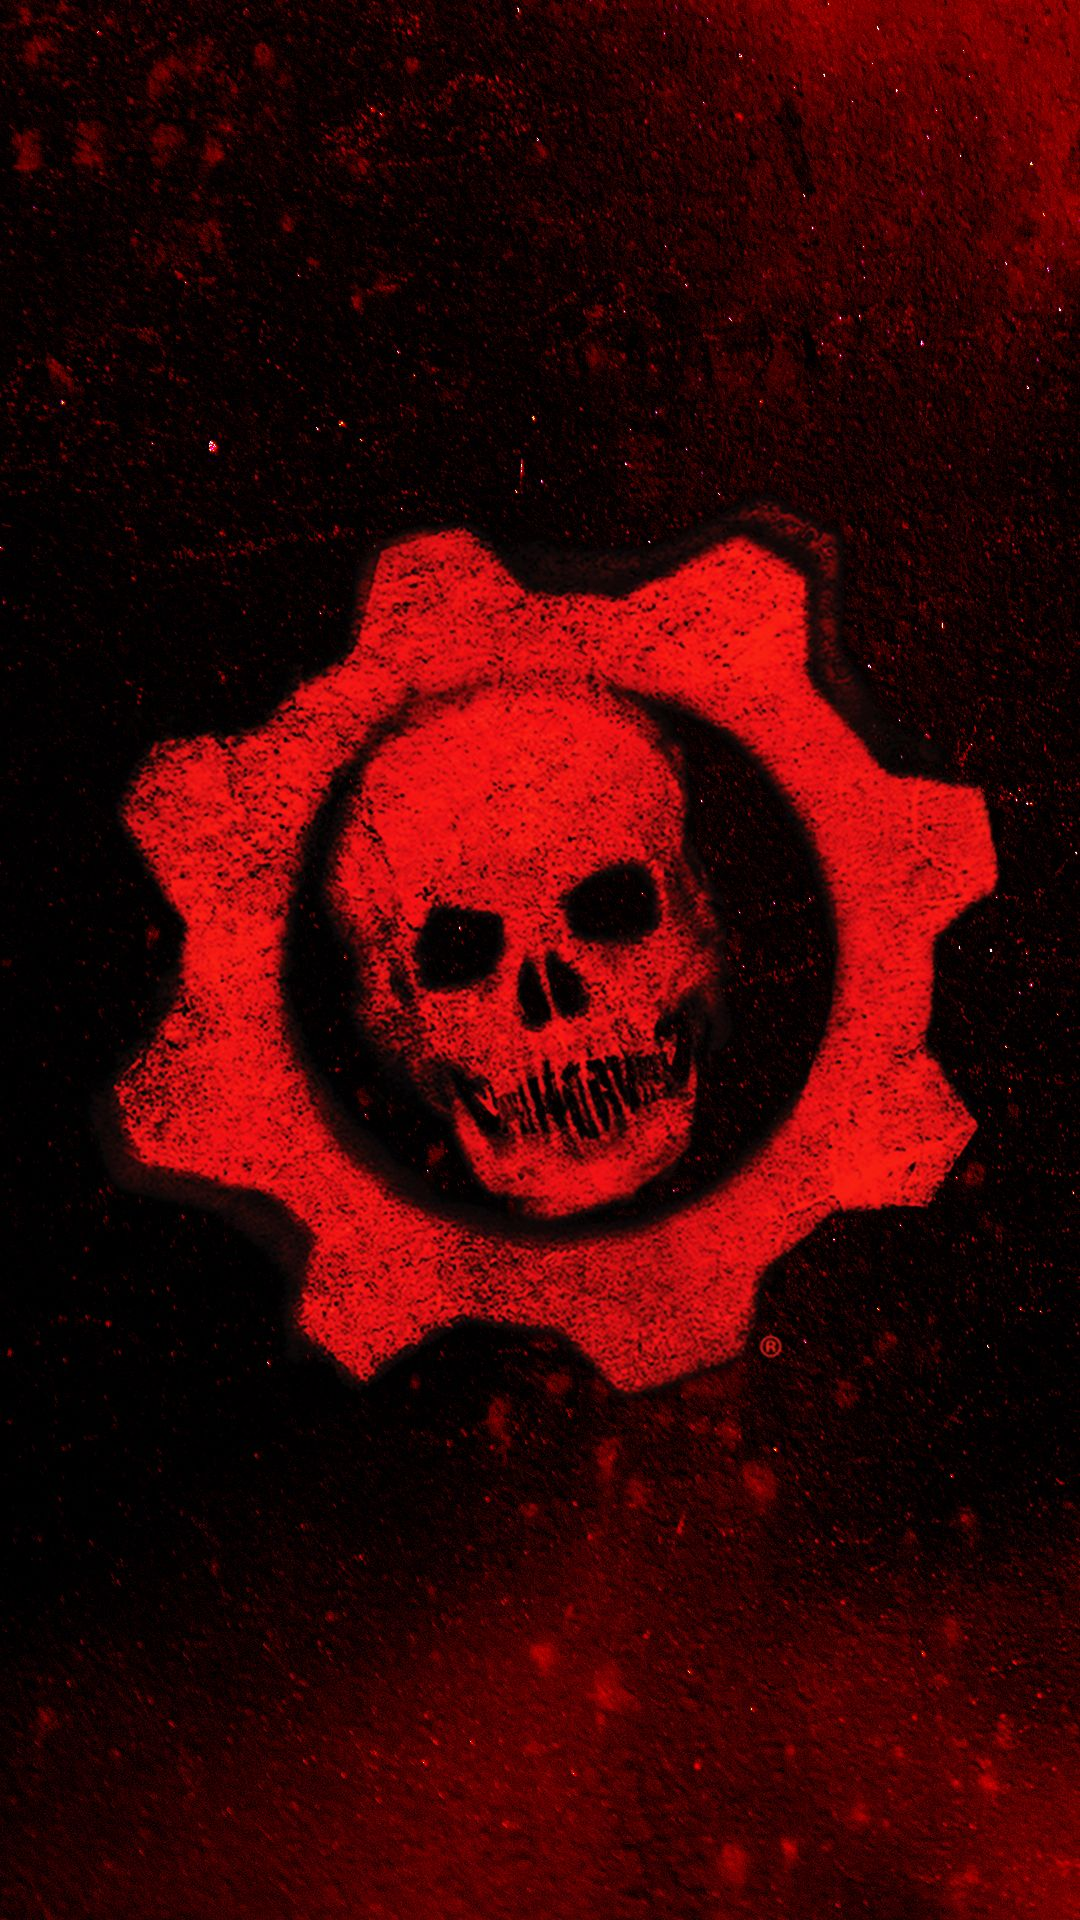 Gears Of War 4 Hd Wallpaper For Your Android Phone Iphone